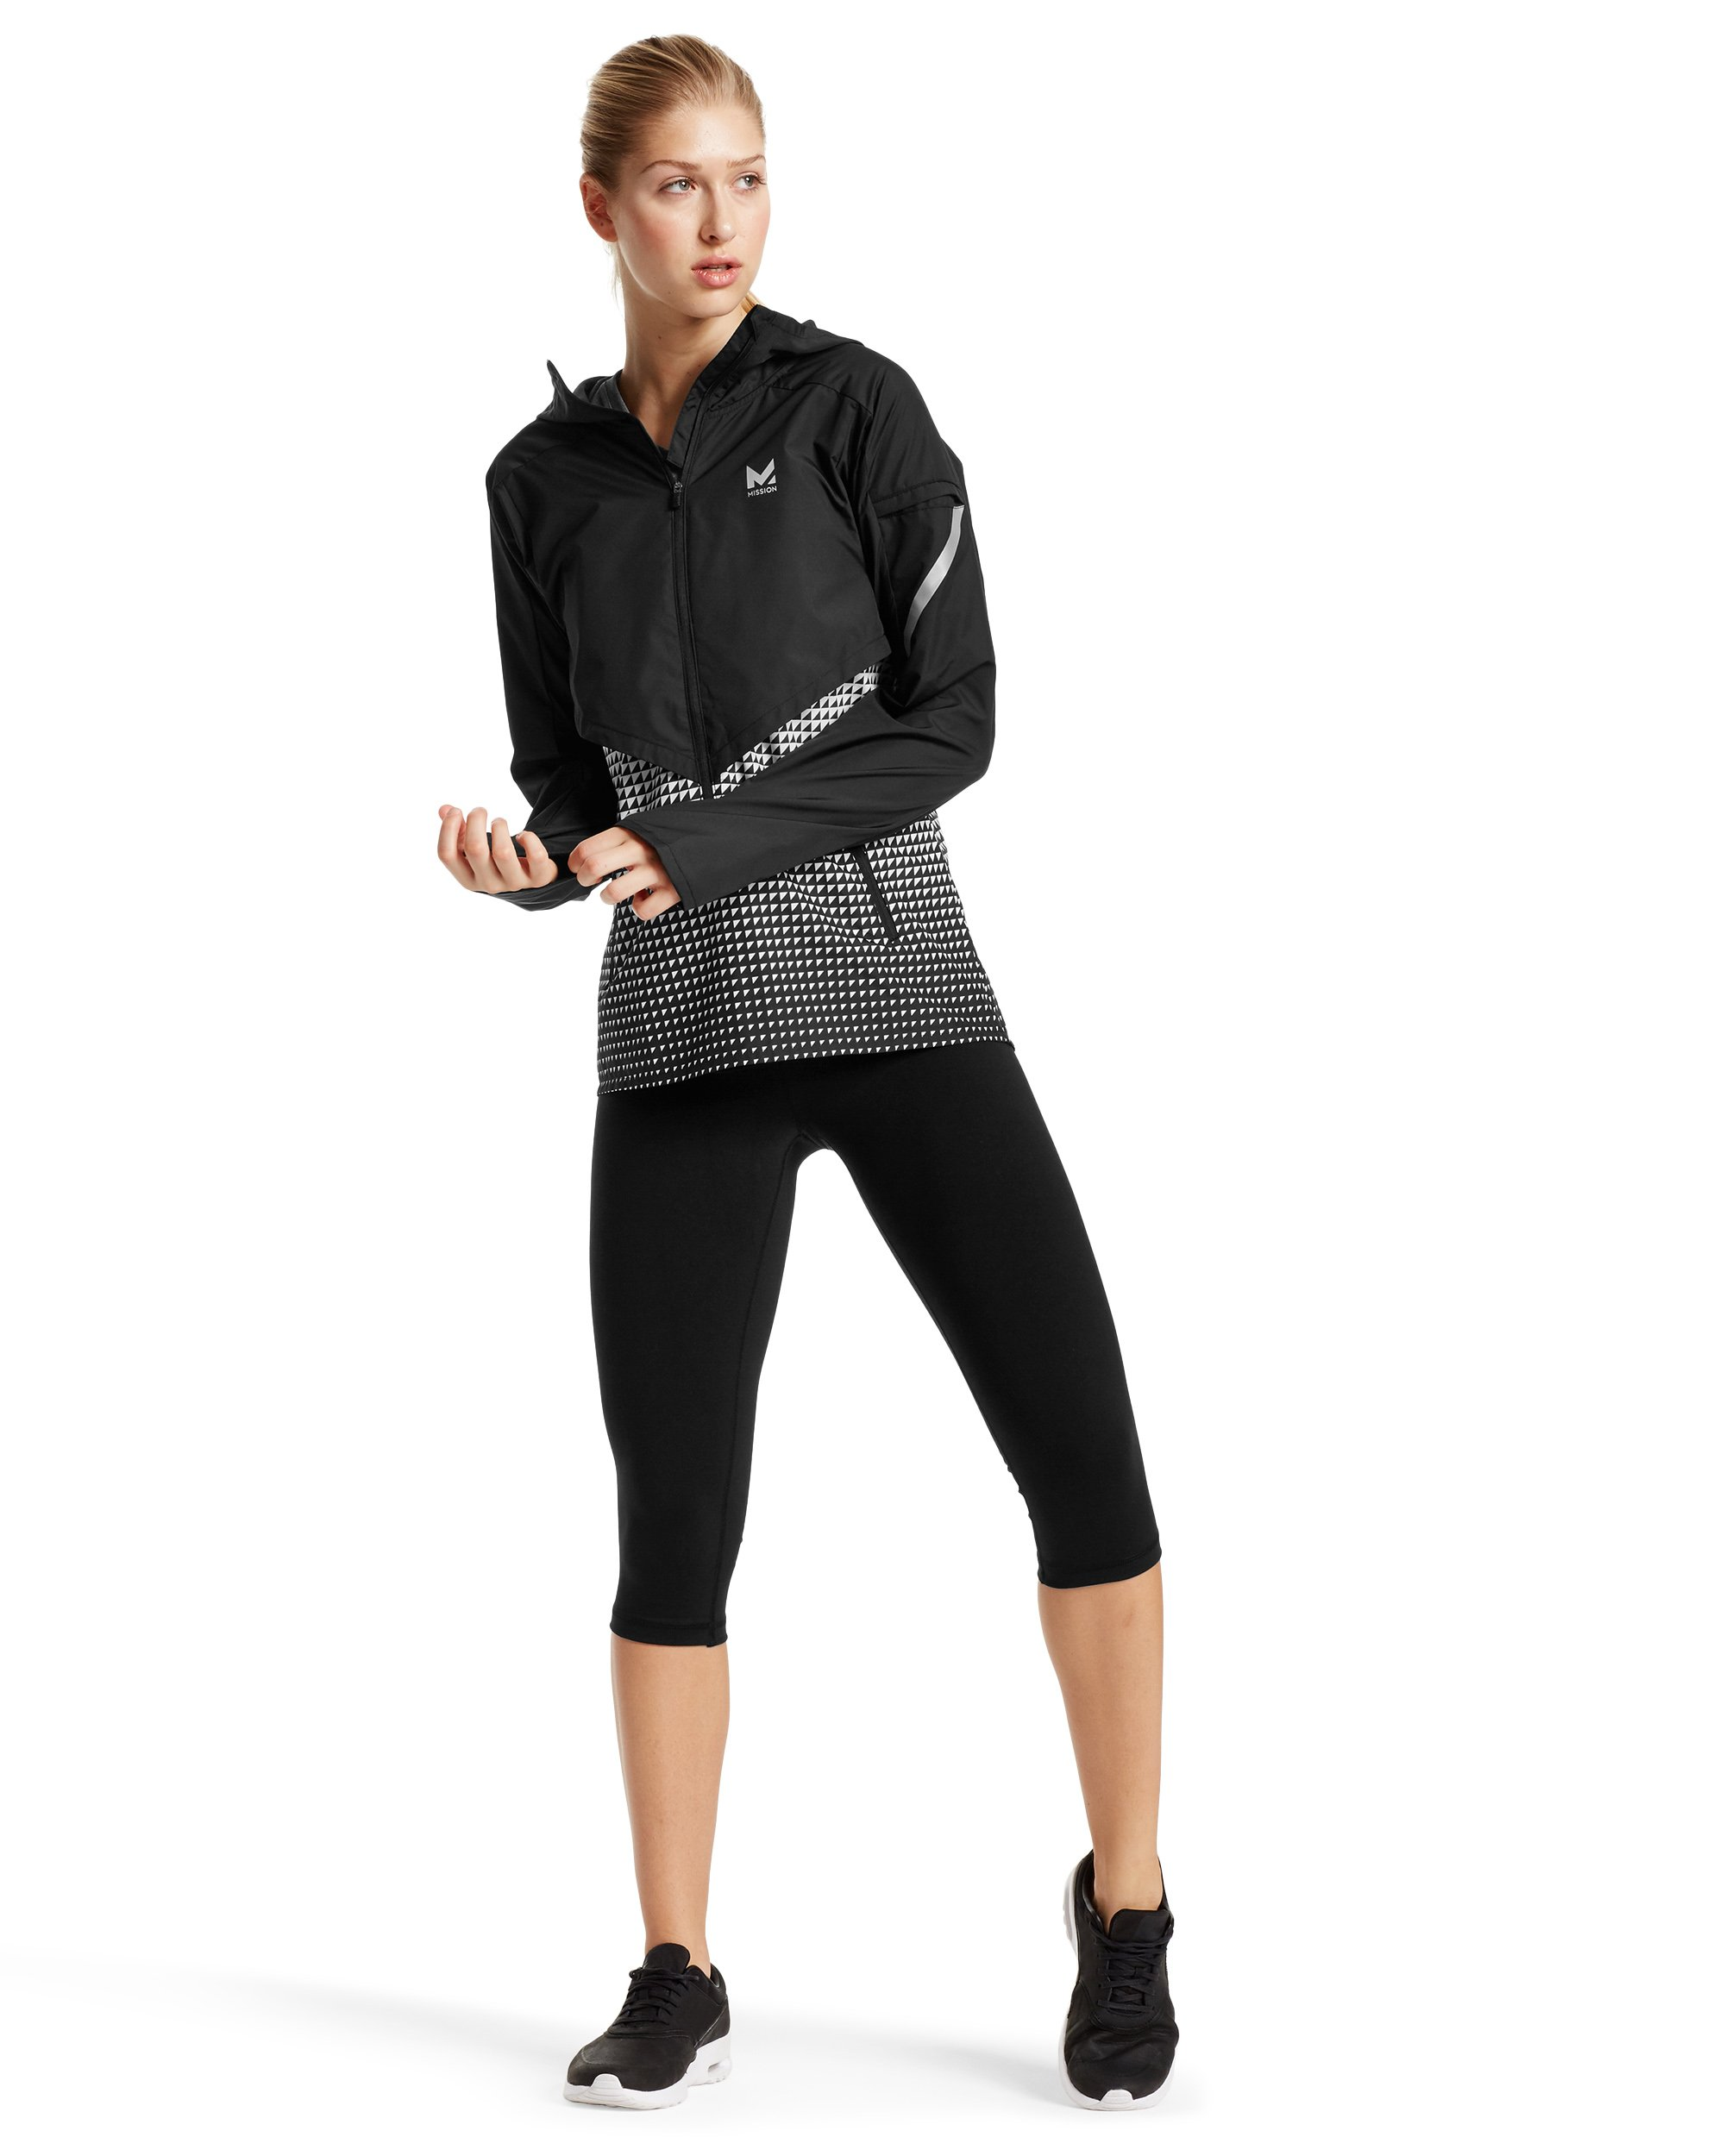 Mission Women's VaporActive Barometer Running Jacket, Moonless Night/Bright White Ombre, Medium by MISSION (Image #4)